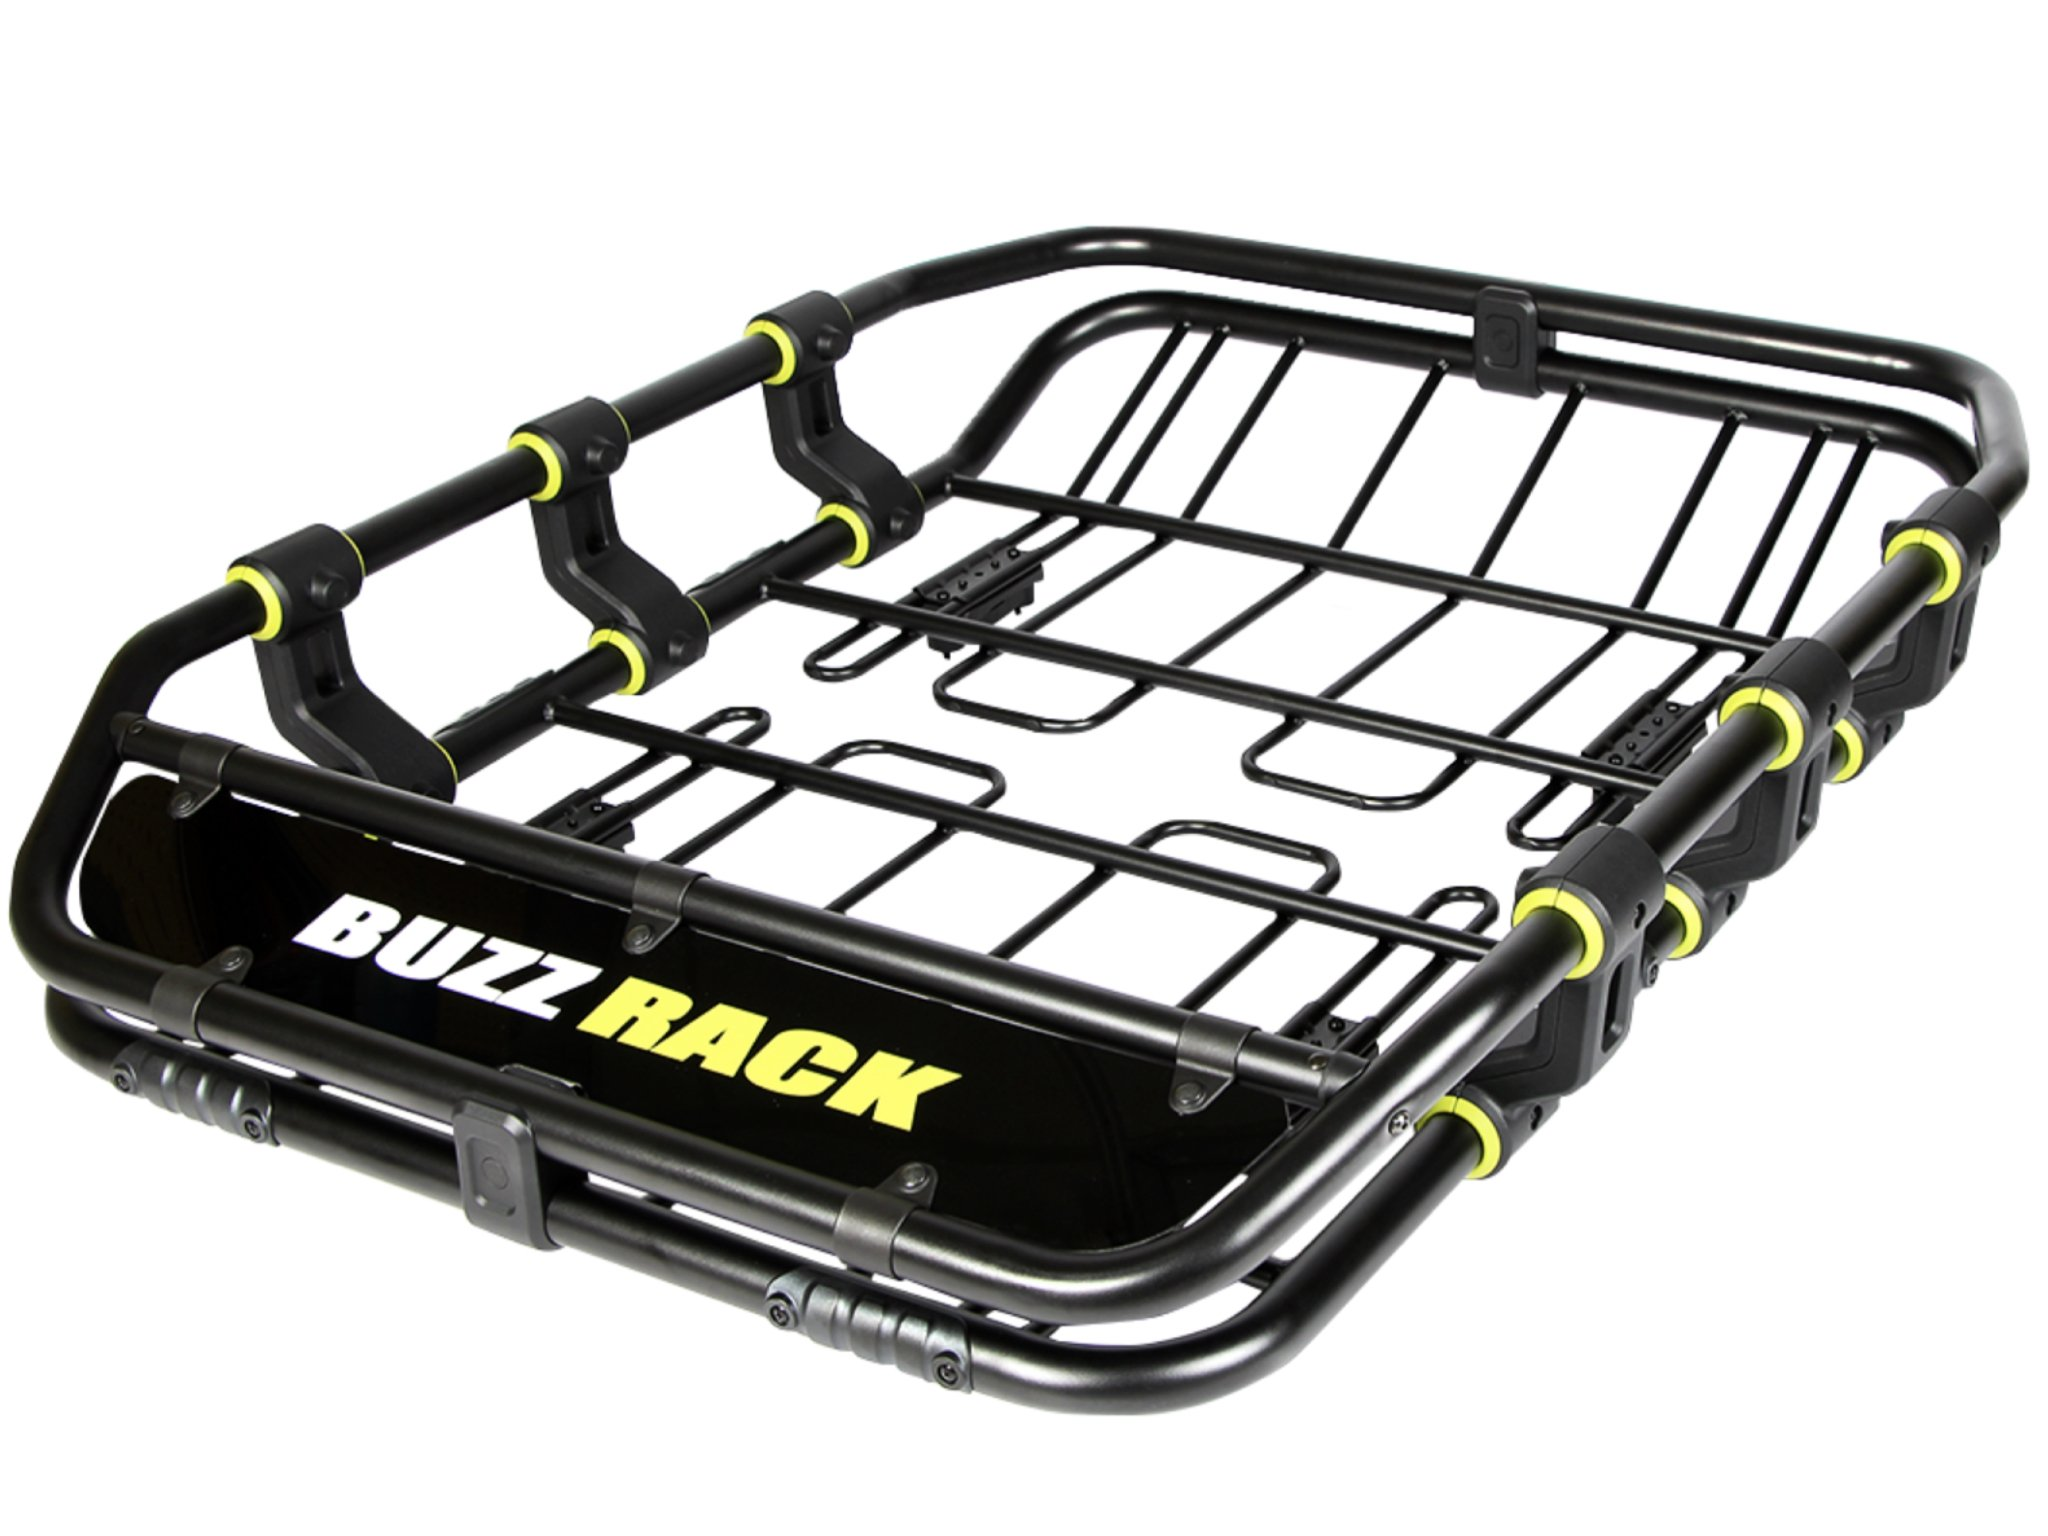 BUZZ RACK ATOMIC BUZZ Super Duty Roof Cargo Basket Luggage Carrier Rack with Wind deflection & Removable Extension Kit (47 in x 35 in x 6)